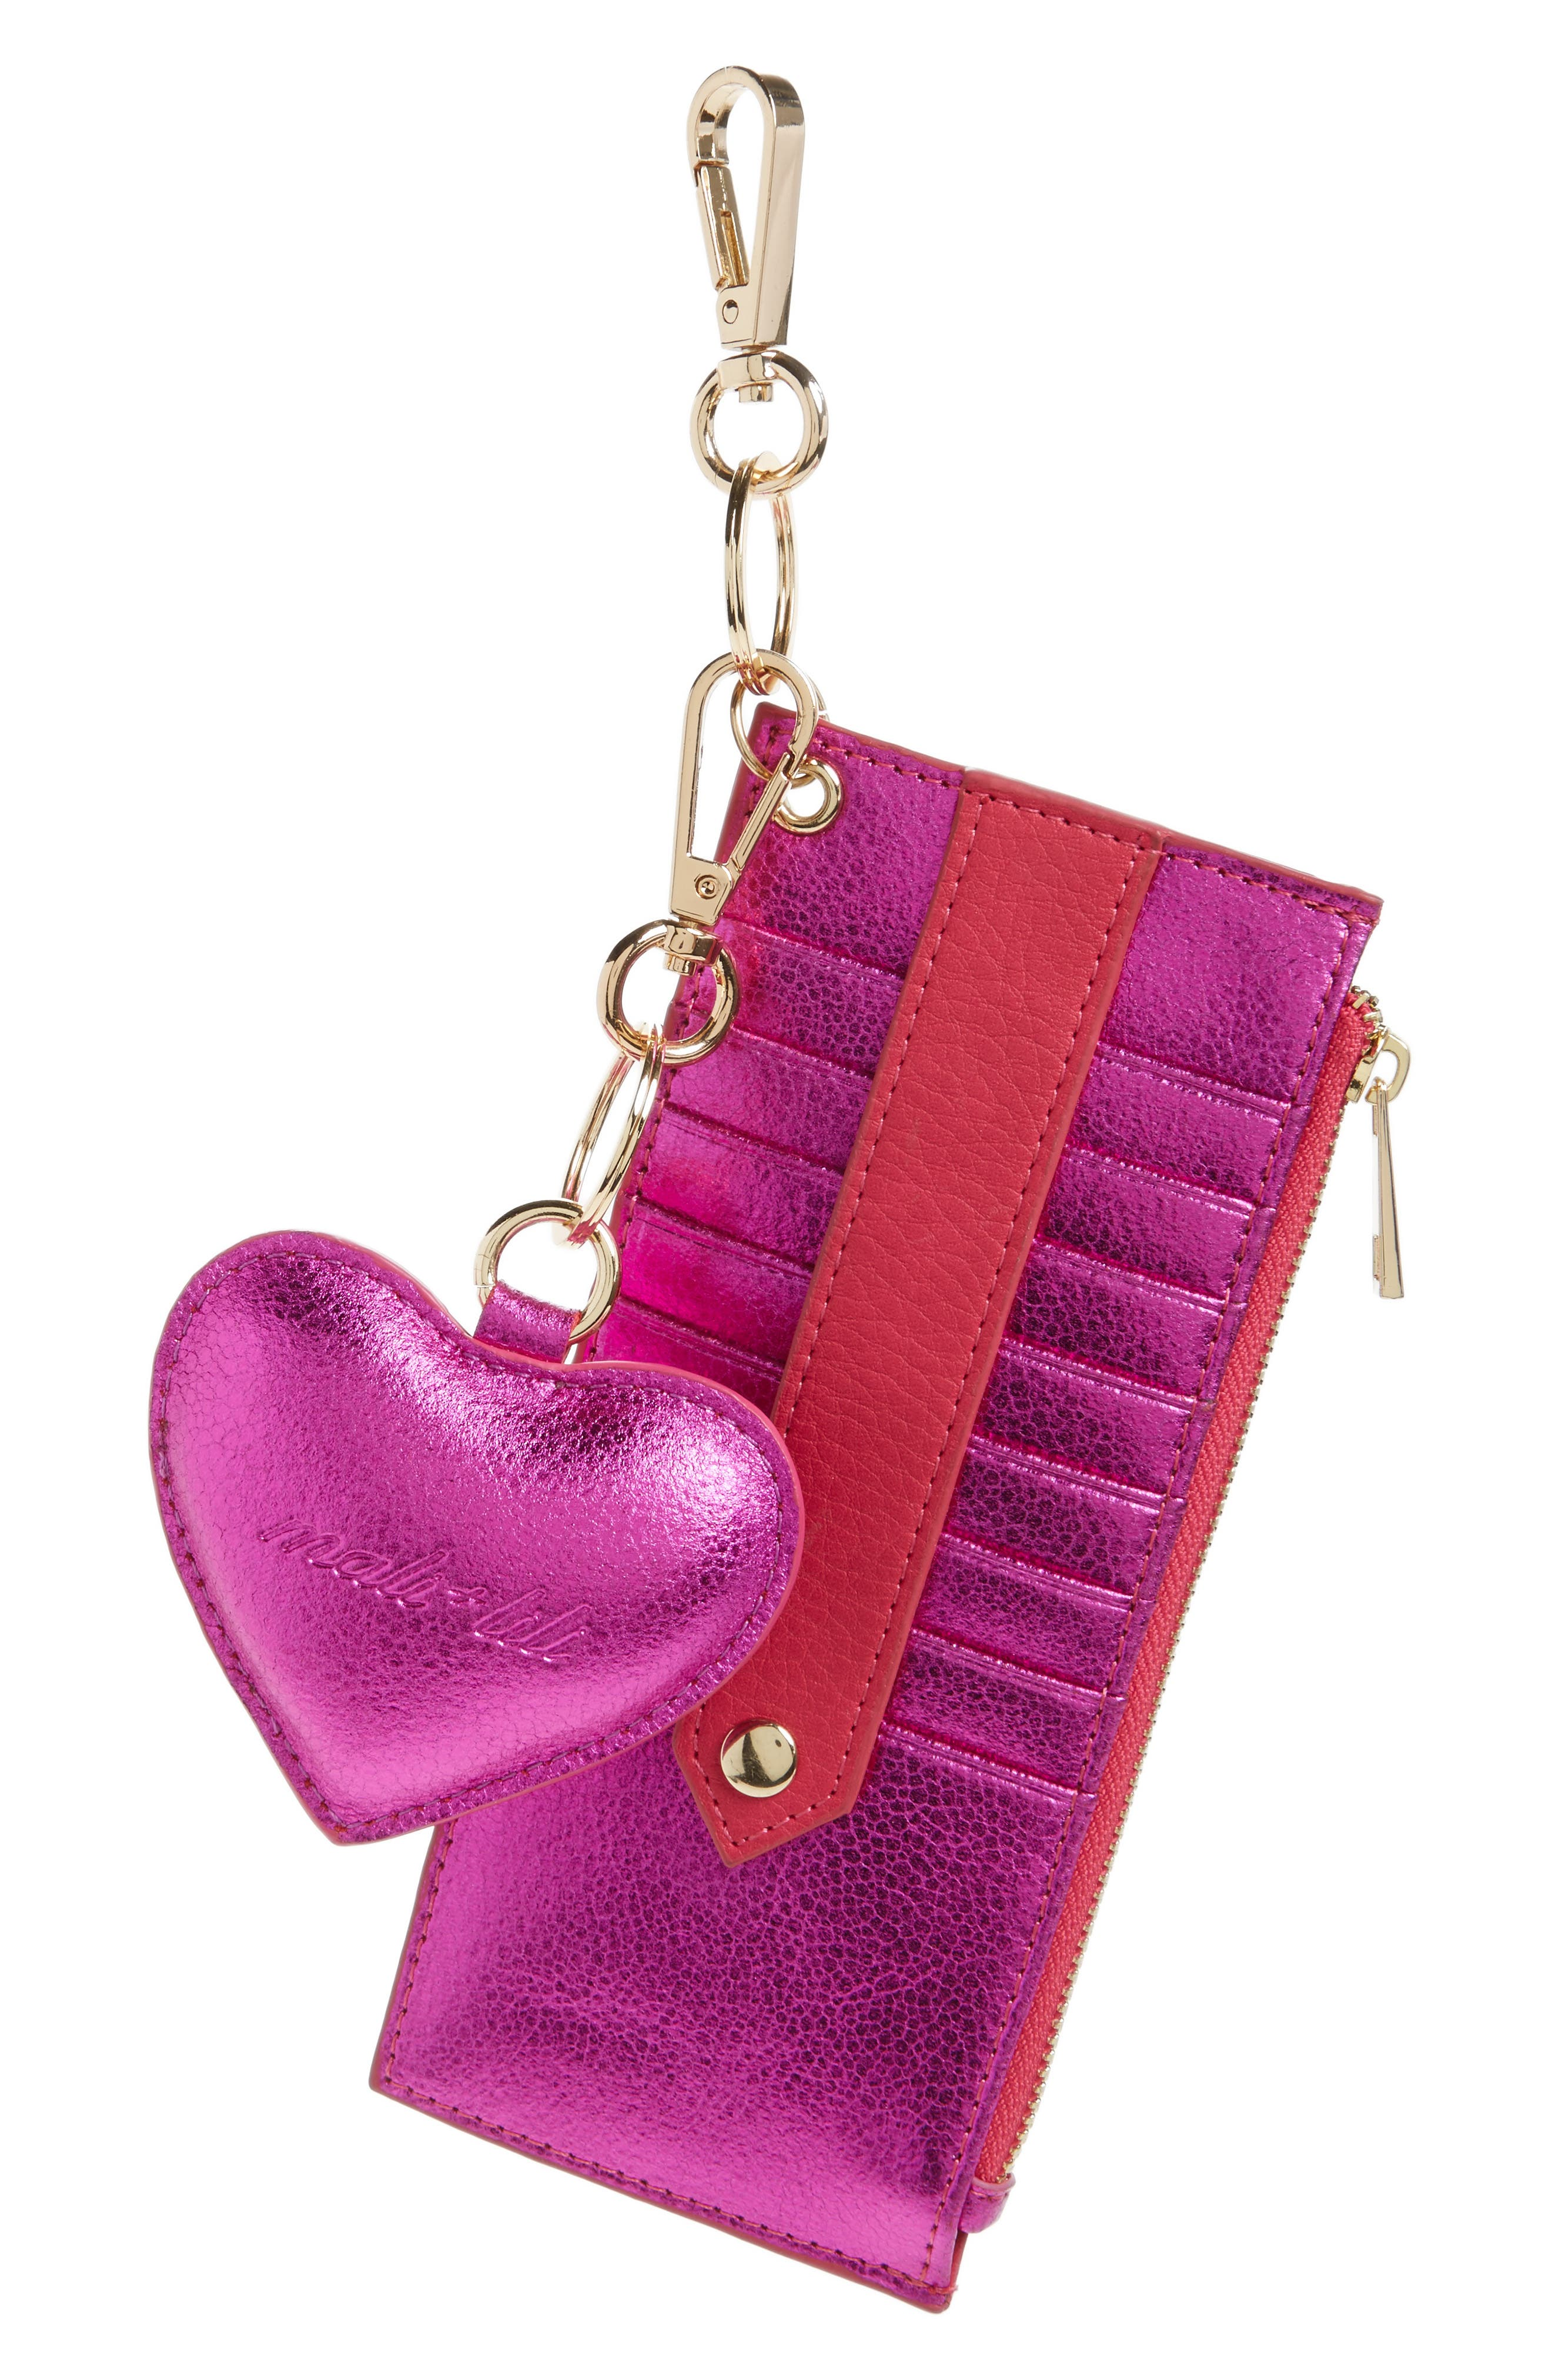 Mali + Lili Sydney Vegan Leather Card Case with Heart Charm,                         Main,                         color, Hot Pink Metallic